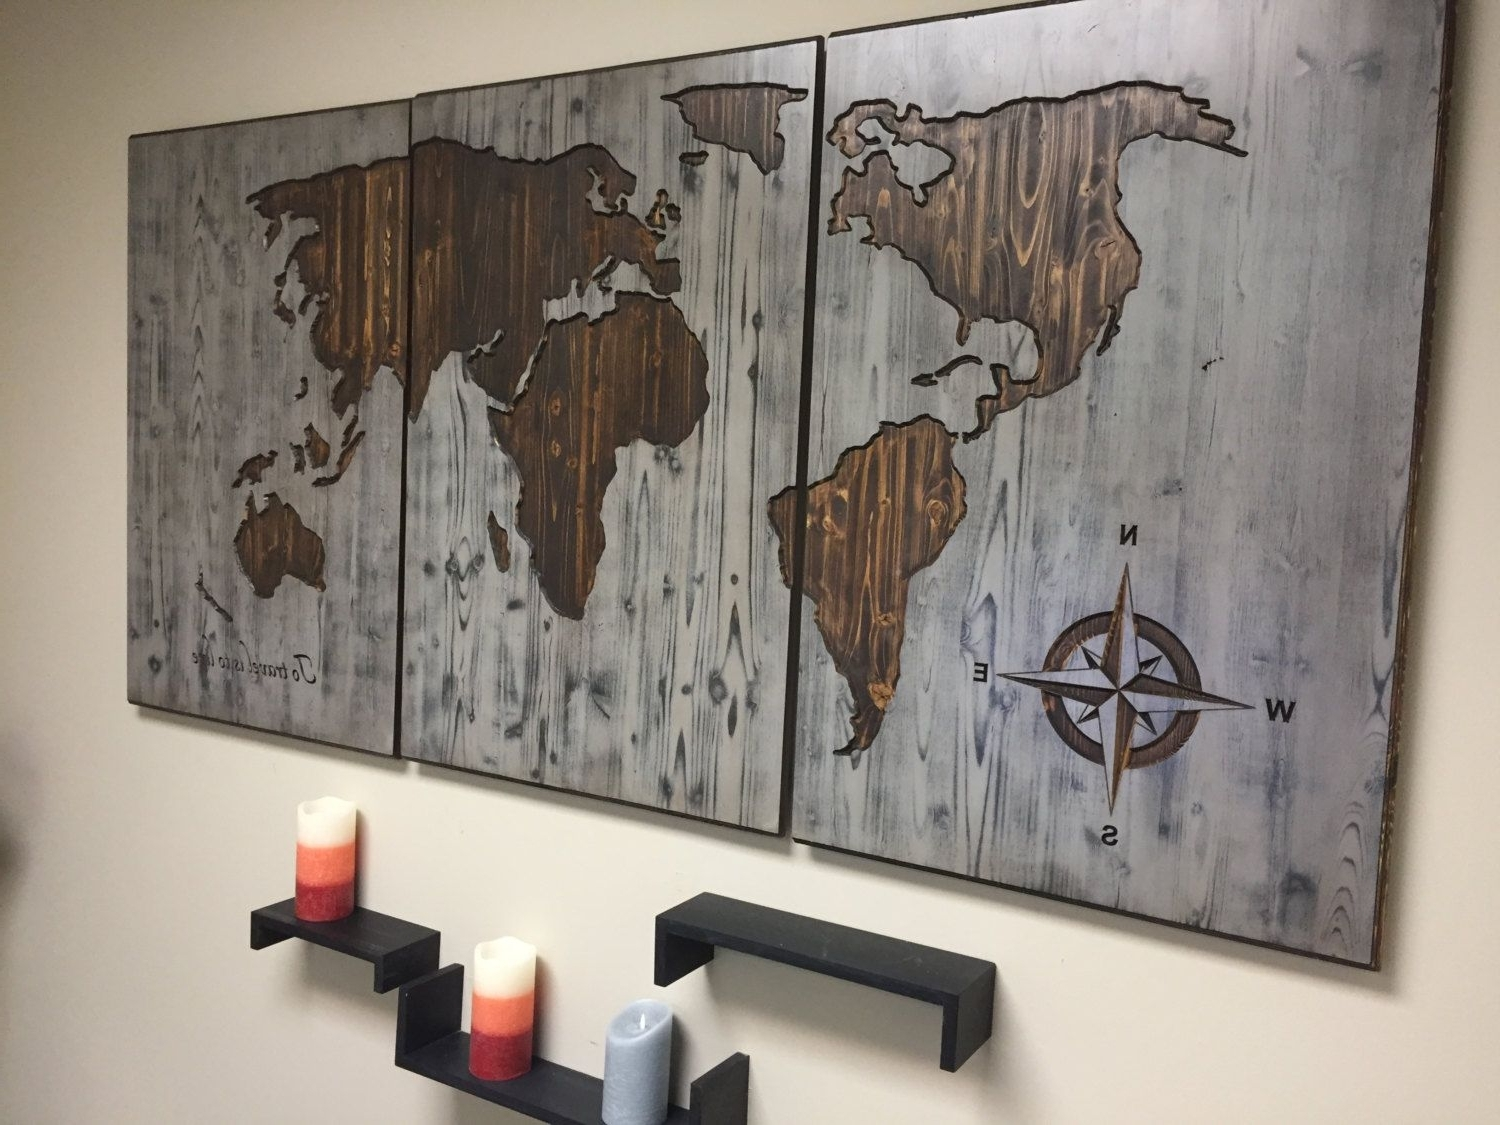 Wooden Wall Art In Well Known Wall Decor For Home, World Map, Customized, Wooden Map, Push Pin Map (View 13 of 15)